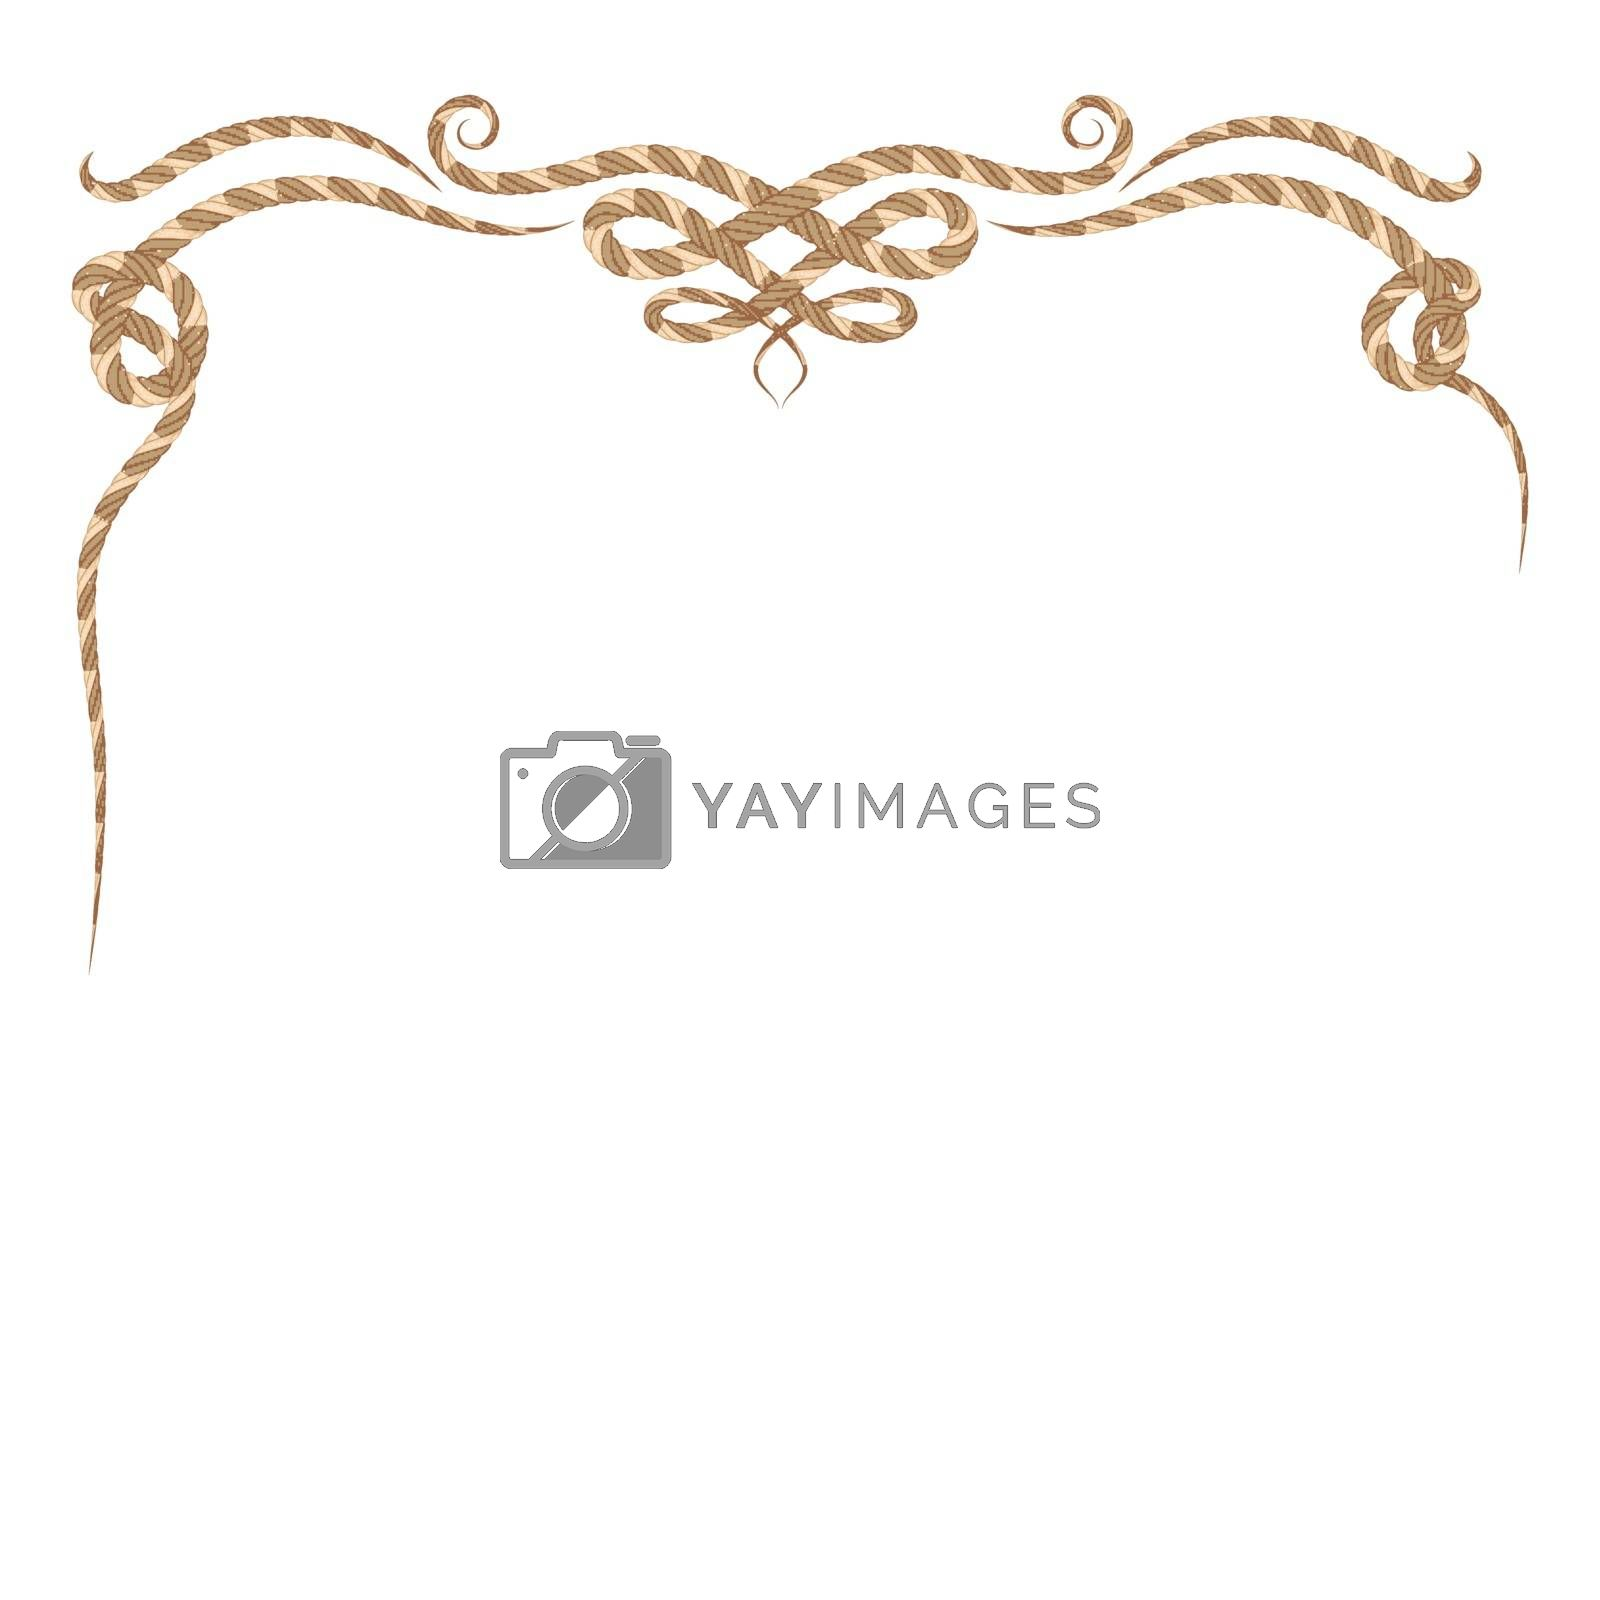 Vector of rope frame set on pattern retro background.